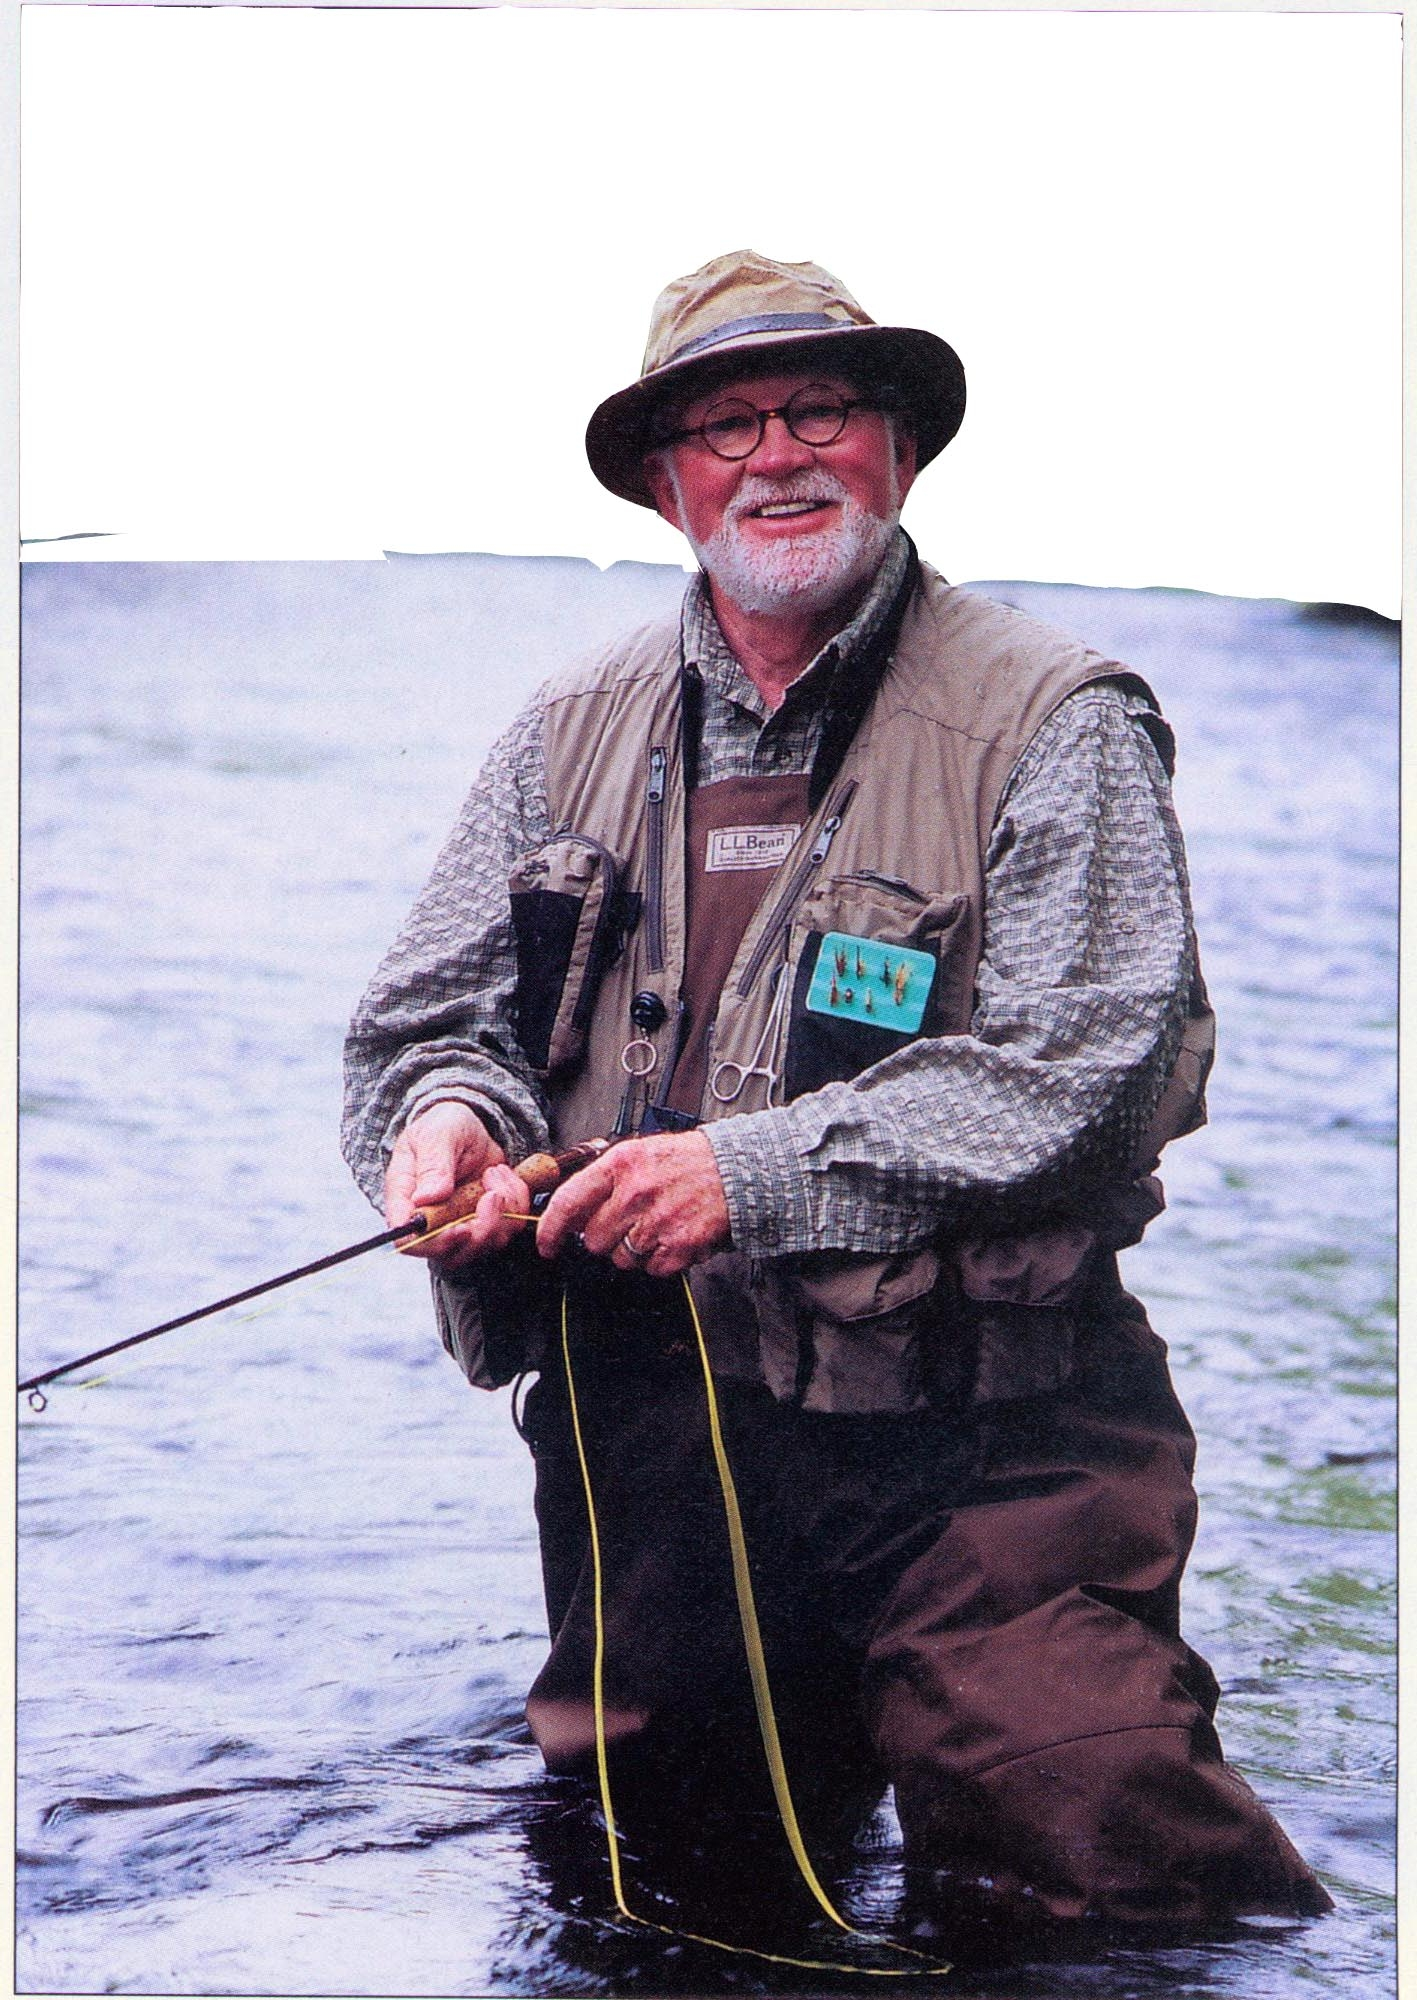 LLBean Fly Casting Instructor Rod McGarry wins Harger Memorial Life Award.